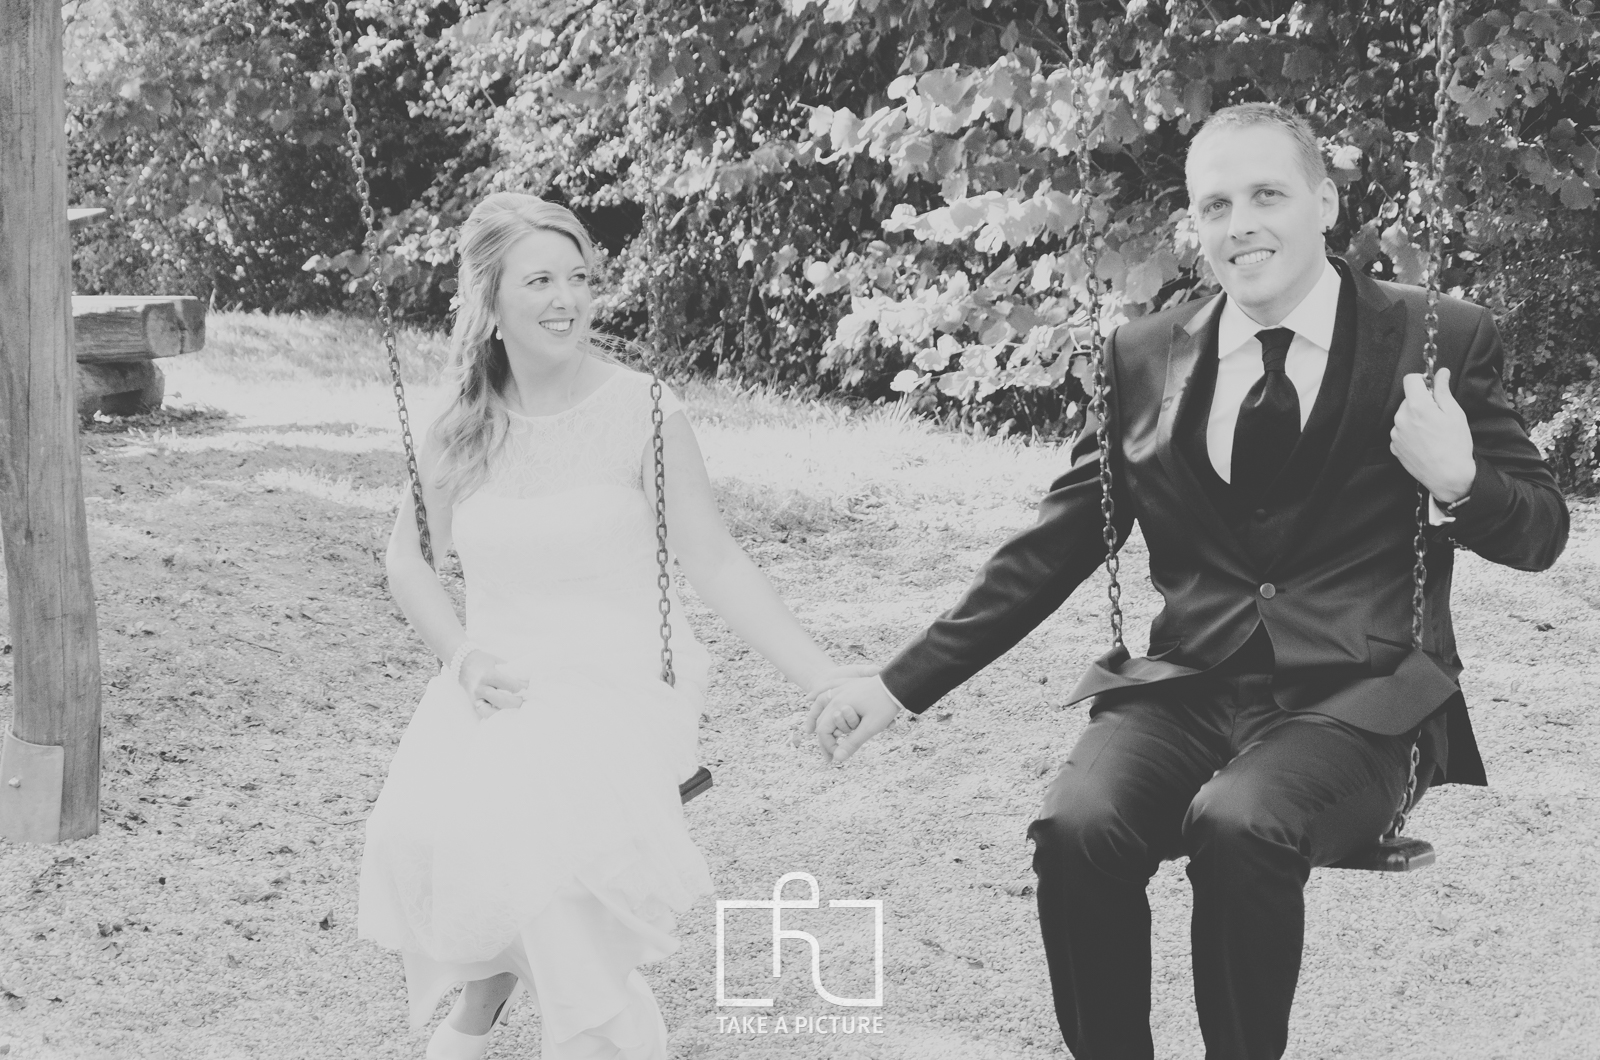 schwäbisch gmünd, lorch, aalen, take a picture, portrait, hochzeit, business, event, fotografie, photography, portraitfotografie, hochzeitfotografie, businessfotografie, eventfotografie, two people, 30-39 years, mid adult, adult, black and white, winter, photography, bride, standing, fun, ceremony, people, dress, outdoors, wedding, portrait, monochrome, horizontal, gray, men, males, women, females, candid, clothing, friendship, wedding dress, bridegroom, suit, life events, adults only, day